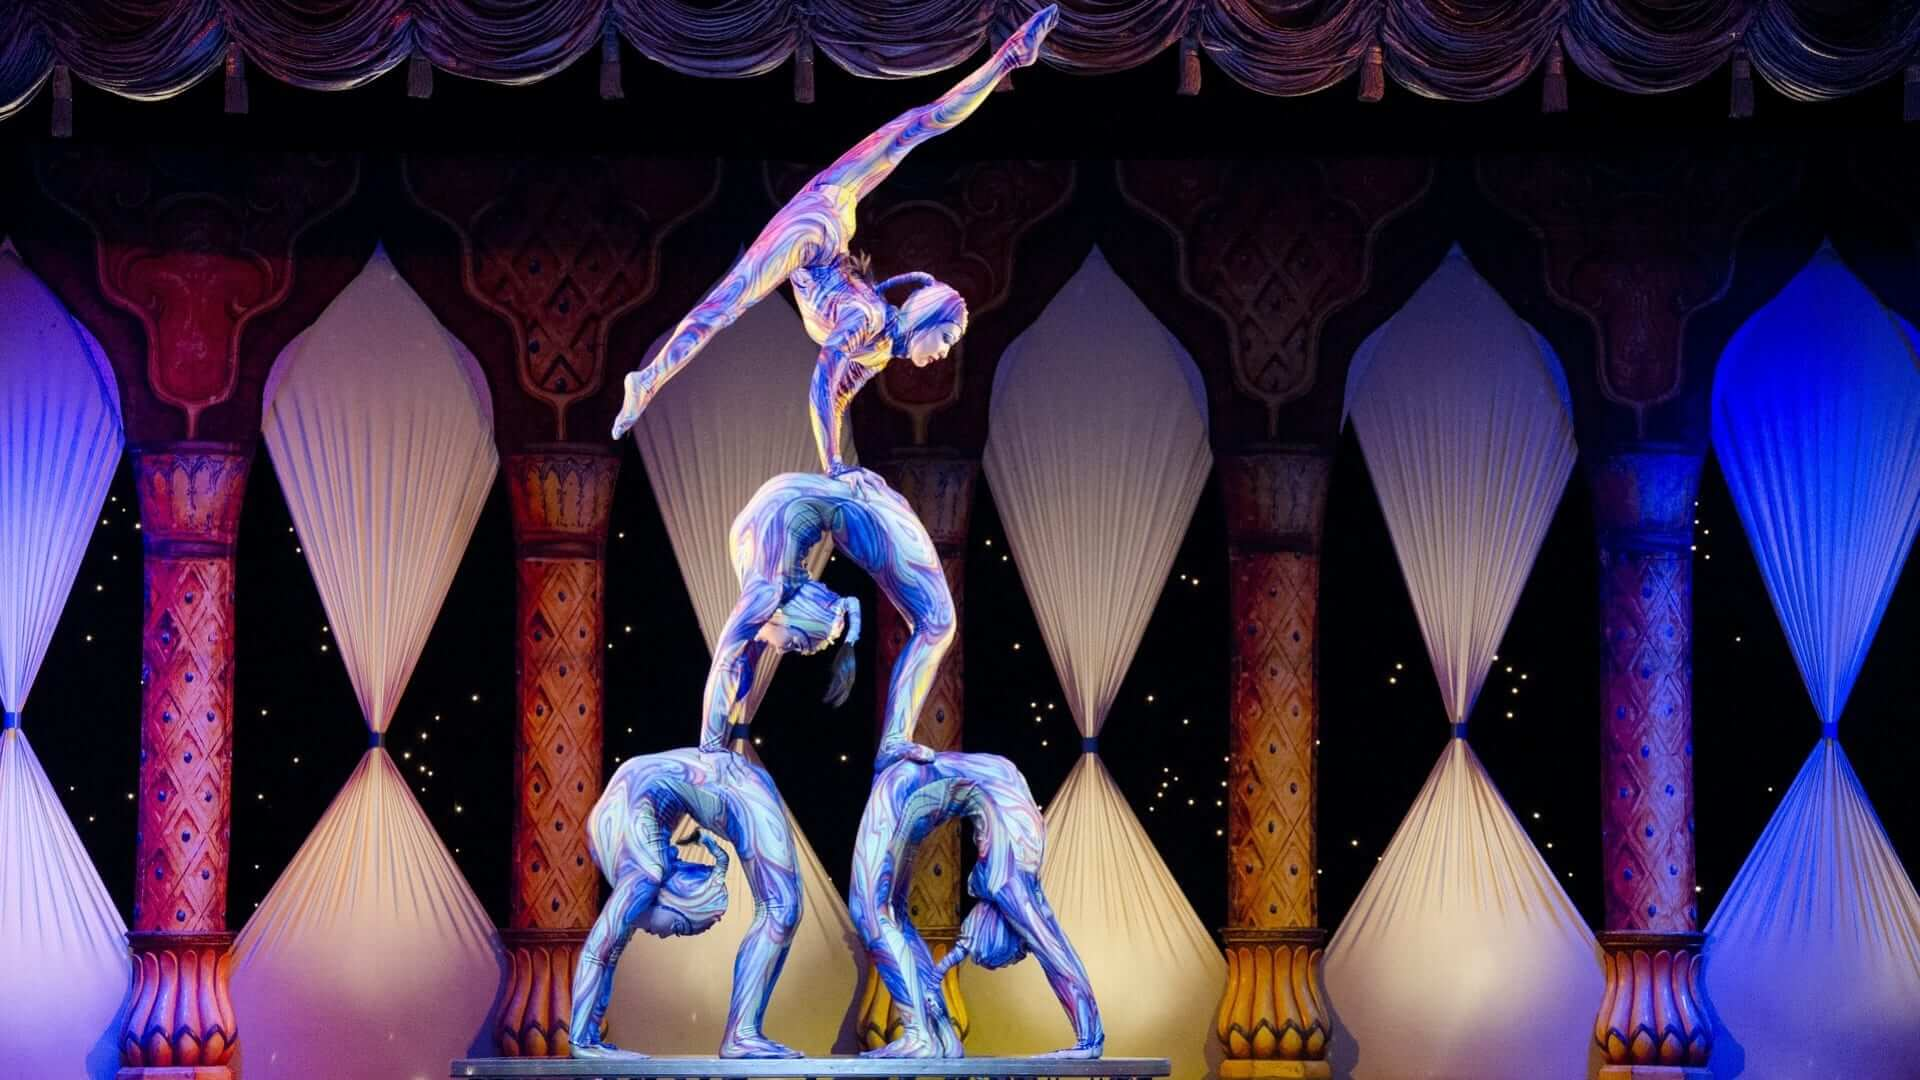 Acrobats are making a human paramide in a circus or theatre in Shanghai.